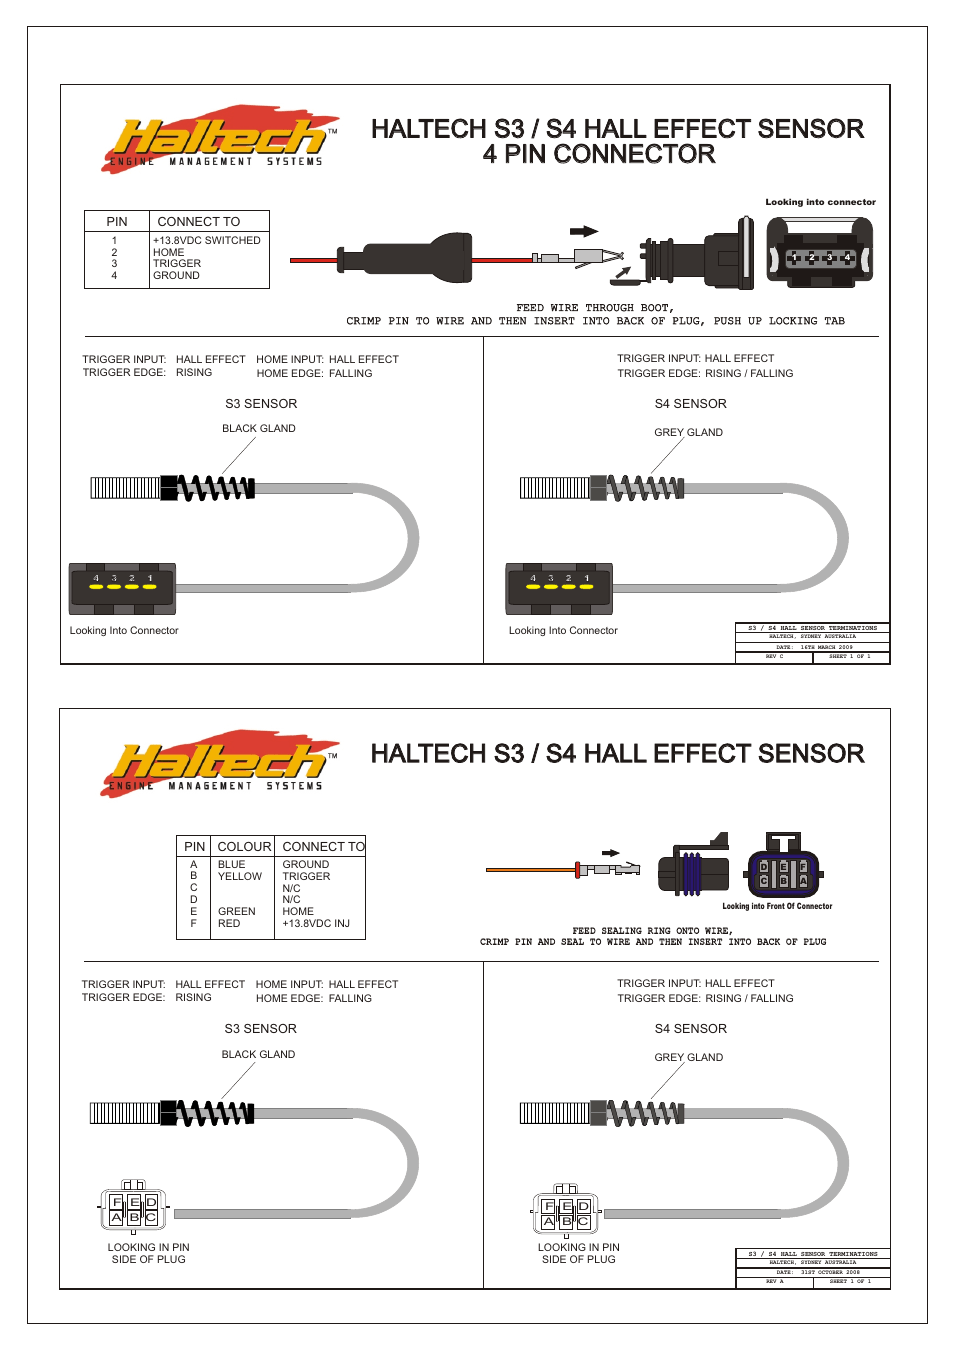 hight resolution of haltech s3 s4 hall effect sensor 4 pin connector haltech s3 s4 rh manualsdir com hall